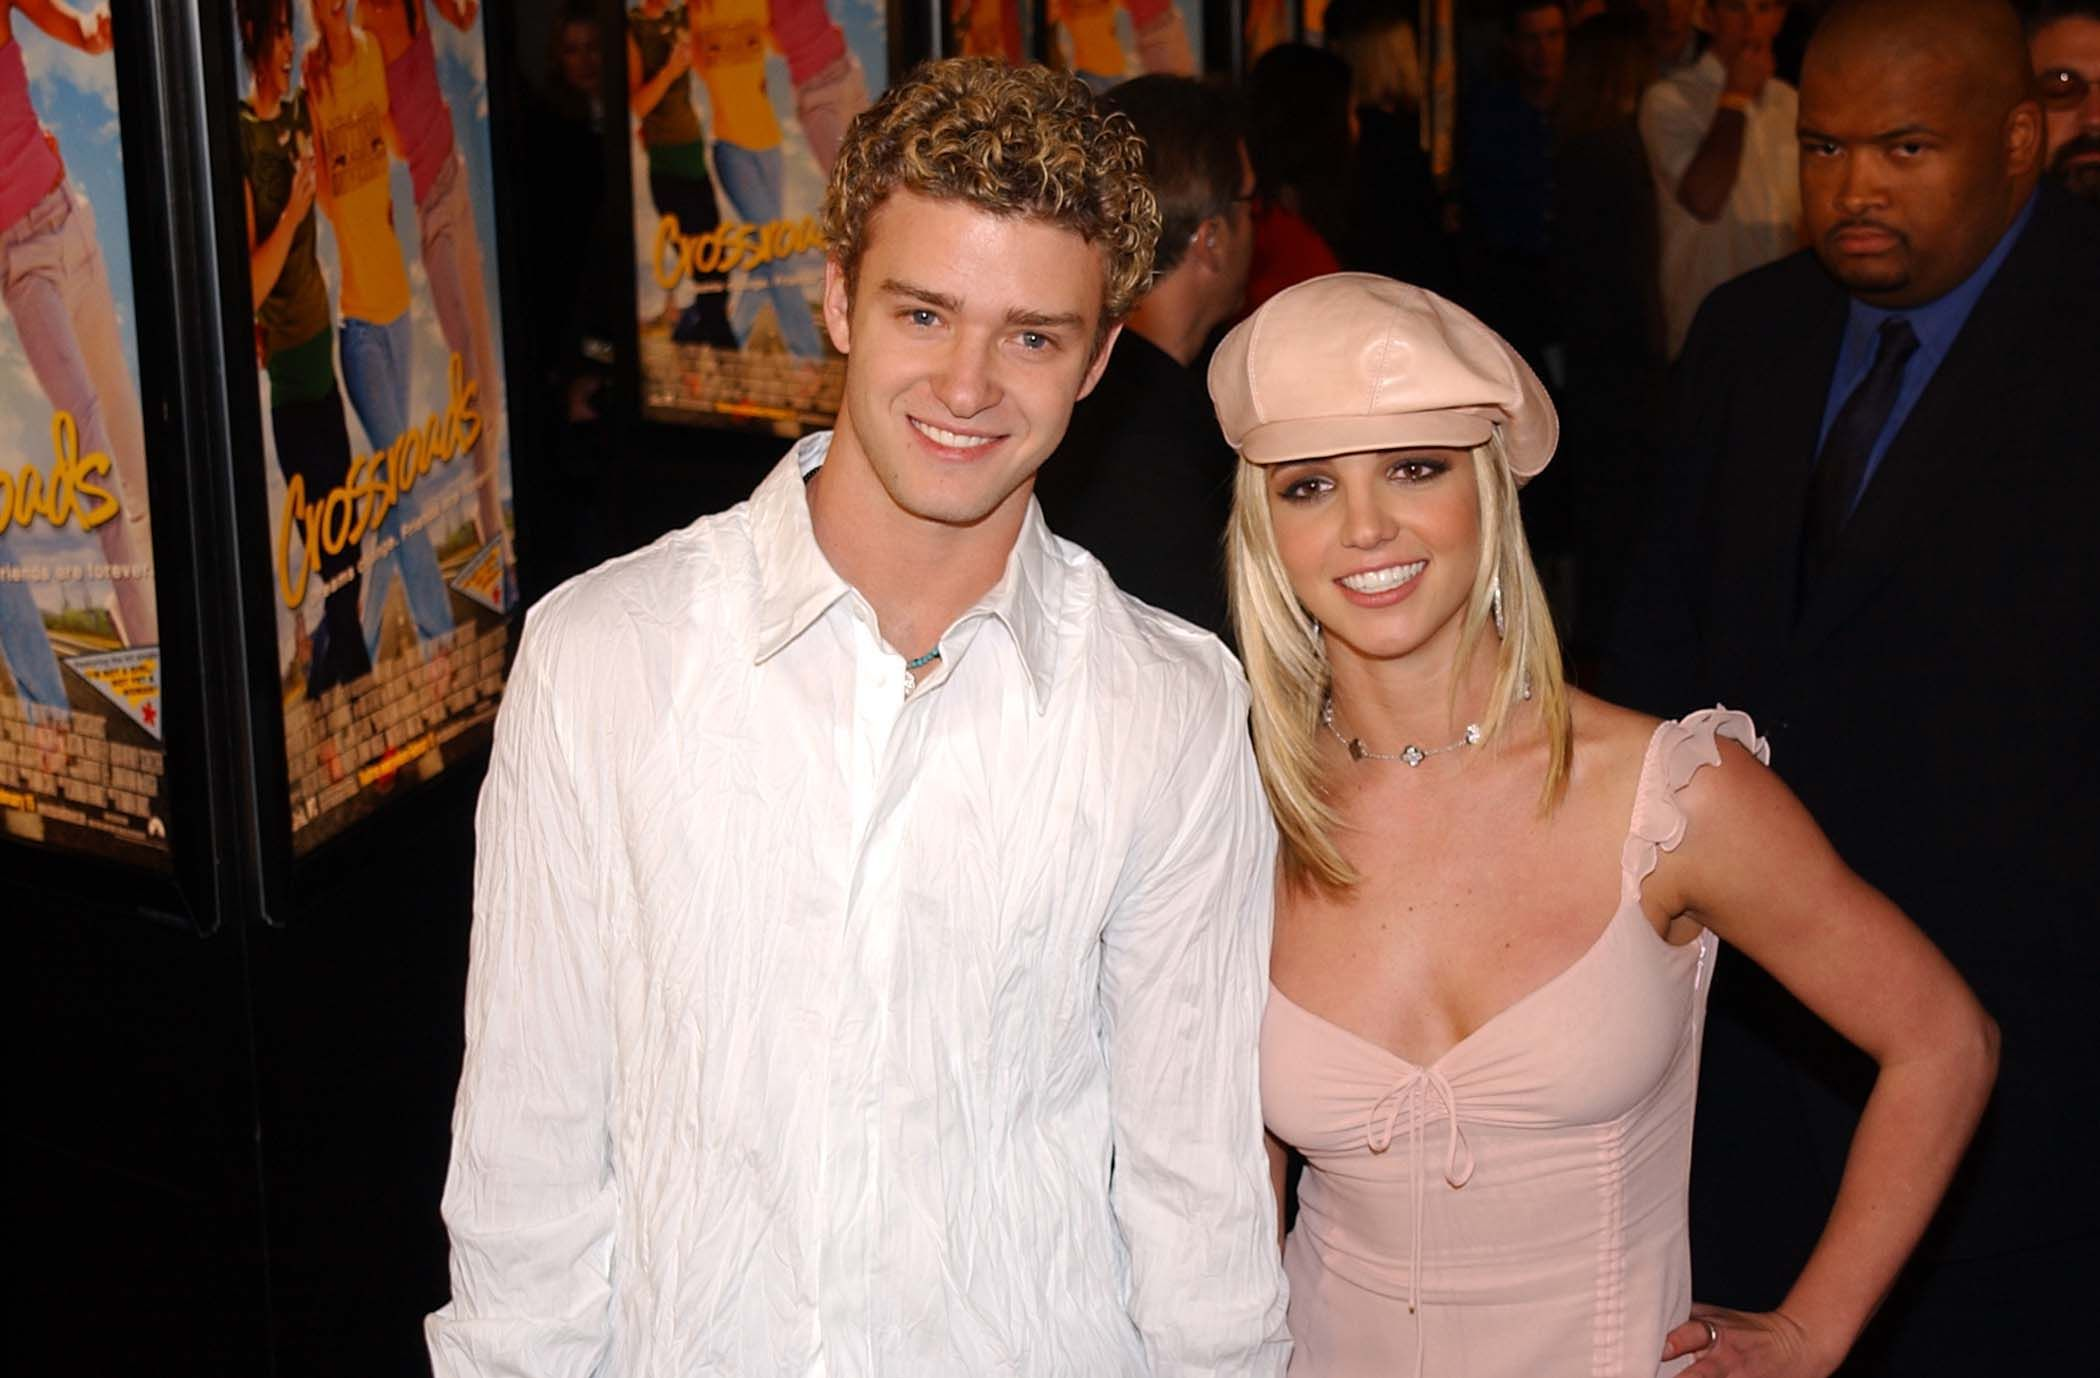 Britney Spears Just Hilariously Trolled Justin Timberlake on Instagram